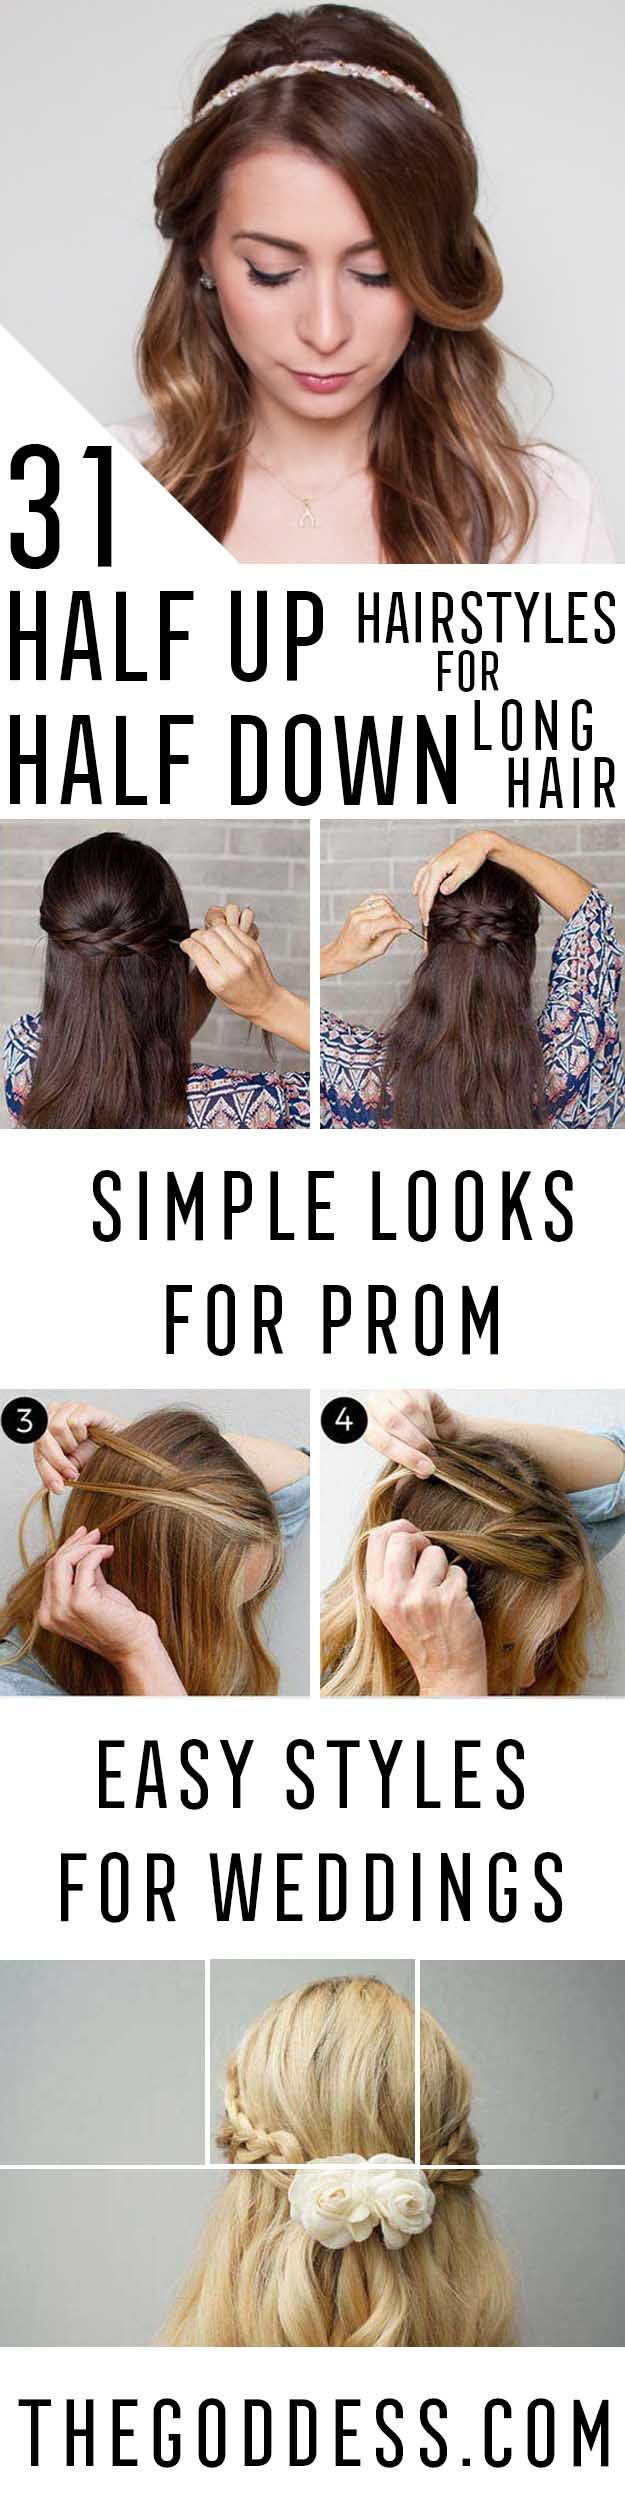 Amazing Half Up-Half Down Hairstyles For Long Hair - Easy Step By Step Tutorials...